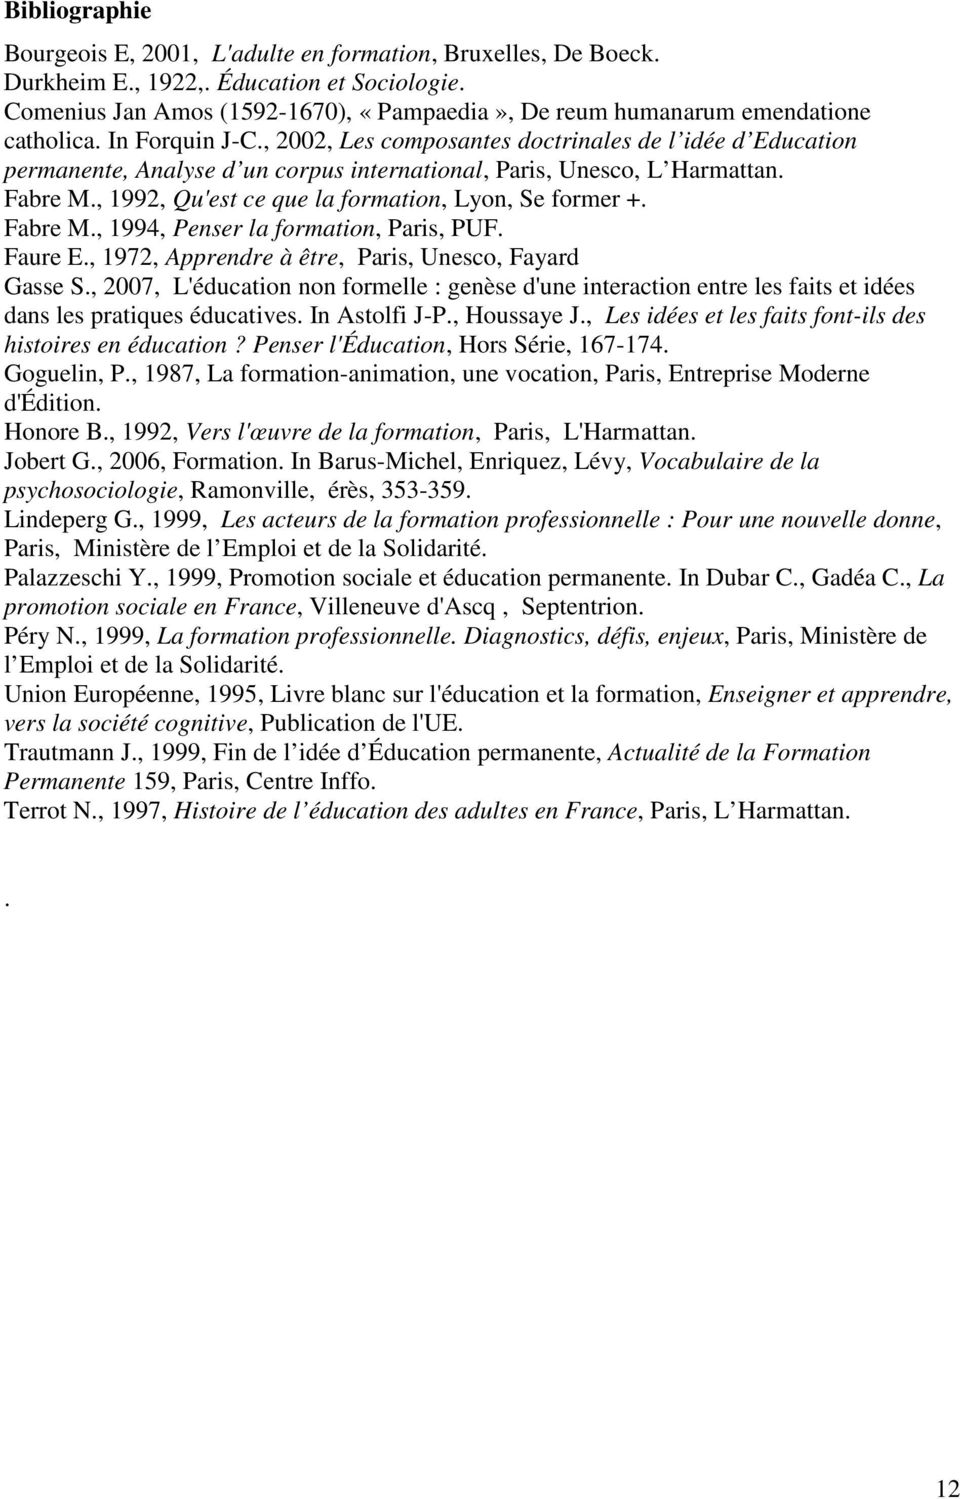 , 2002, Les composantes doctrinales de l idée d Education permanente, Analyse d un corpus international, Paris, Unesco, L Harmattan. Fabre M., 1992, Qu'est ce que la formation, Lyon, Se former +.